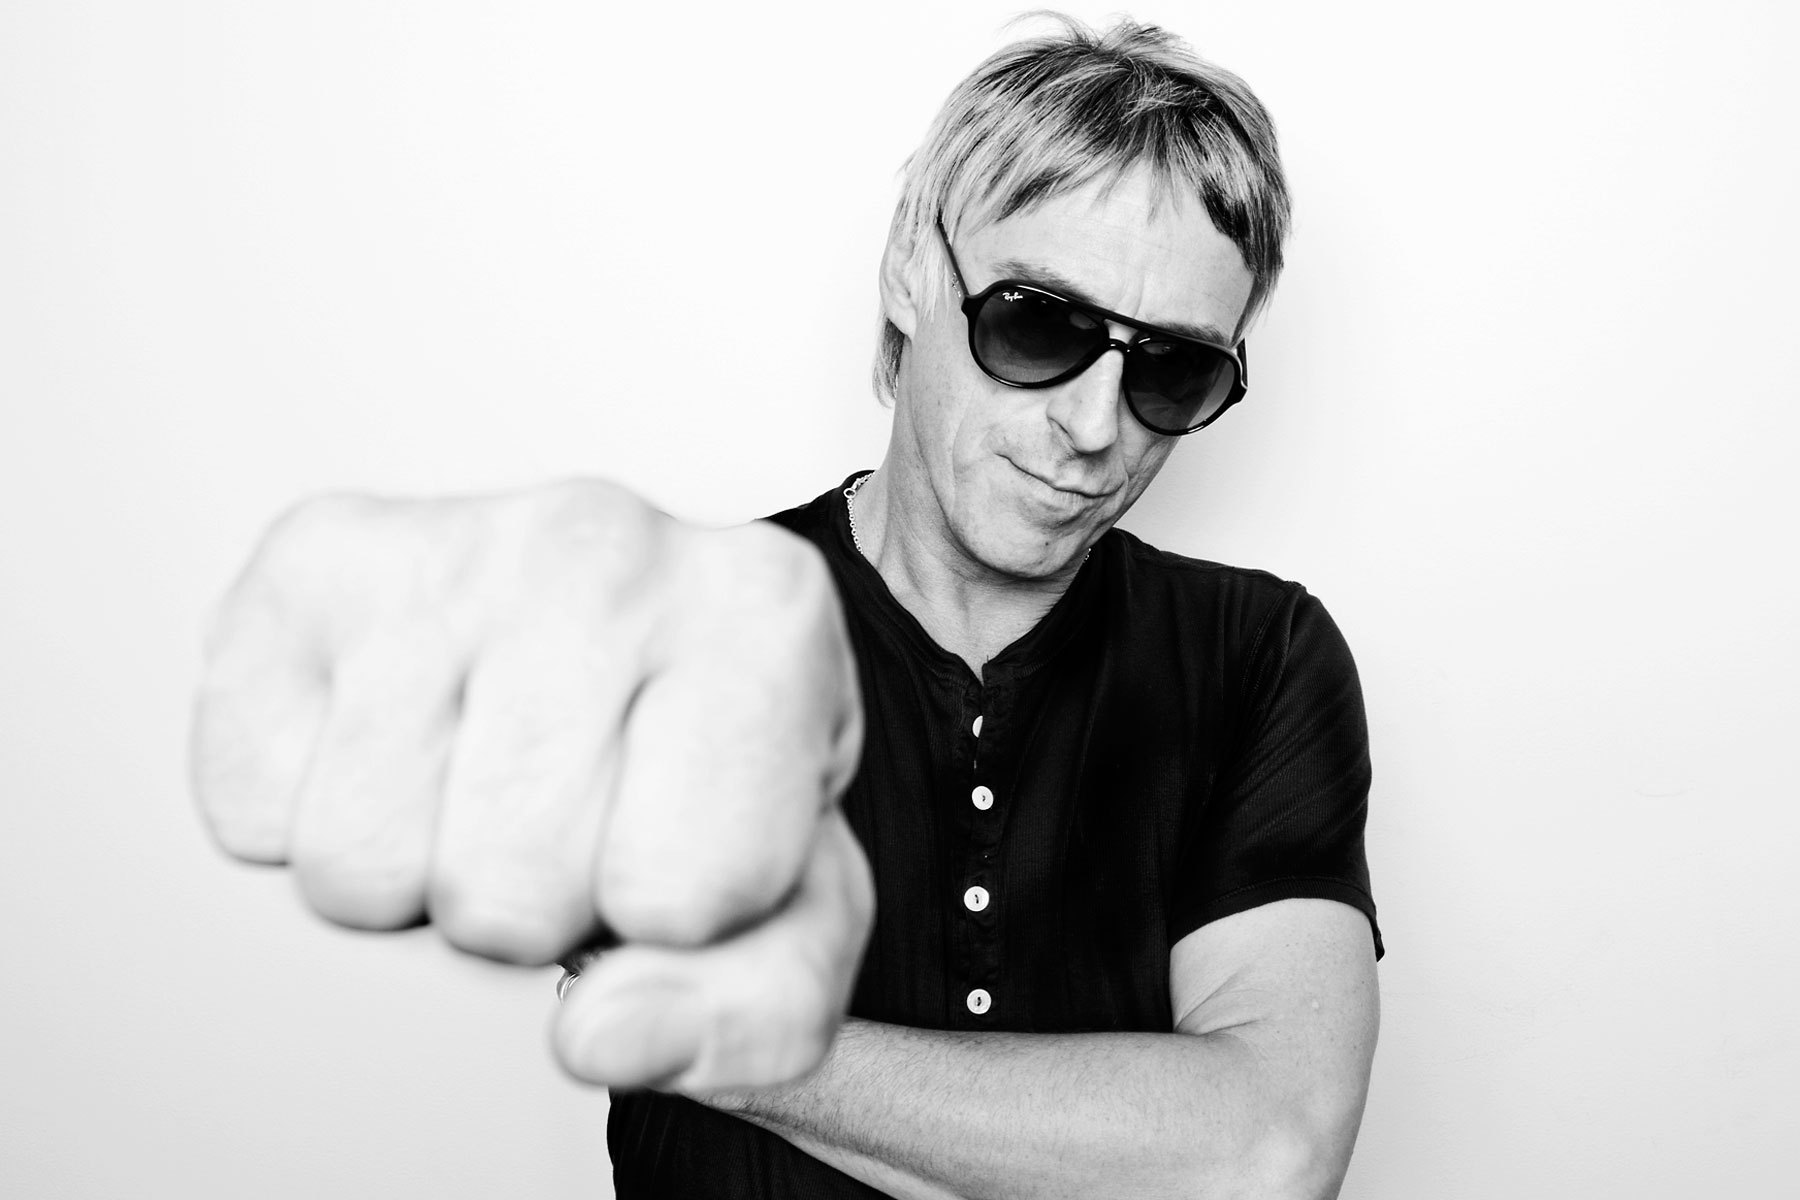 Paul Weller wallpapers, Music, HQ Paul Weller pictures | 4K Wallpapers 2019 Creator: Gino DePinto, gino depinto  |  Credit: Gino DePinto, AOL Copyright: Gino DePinto